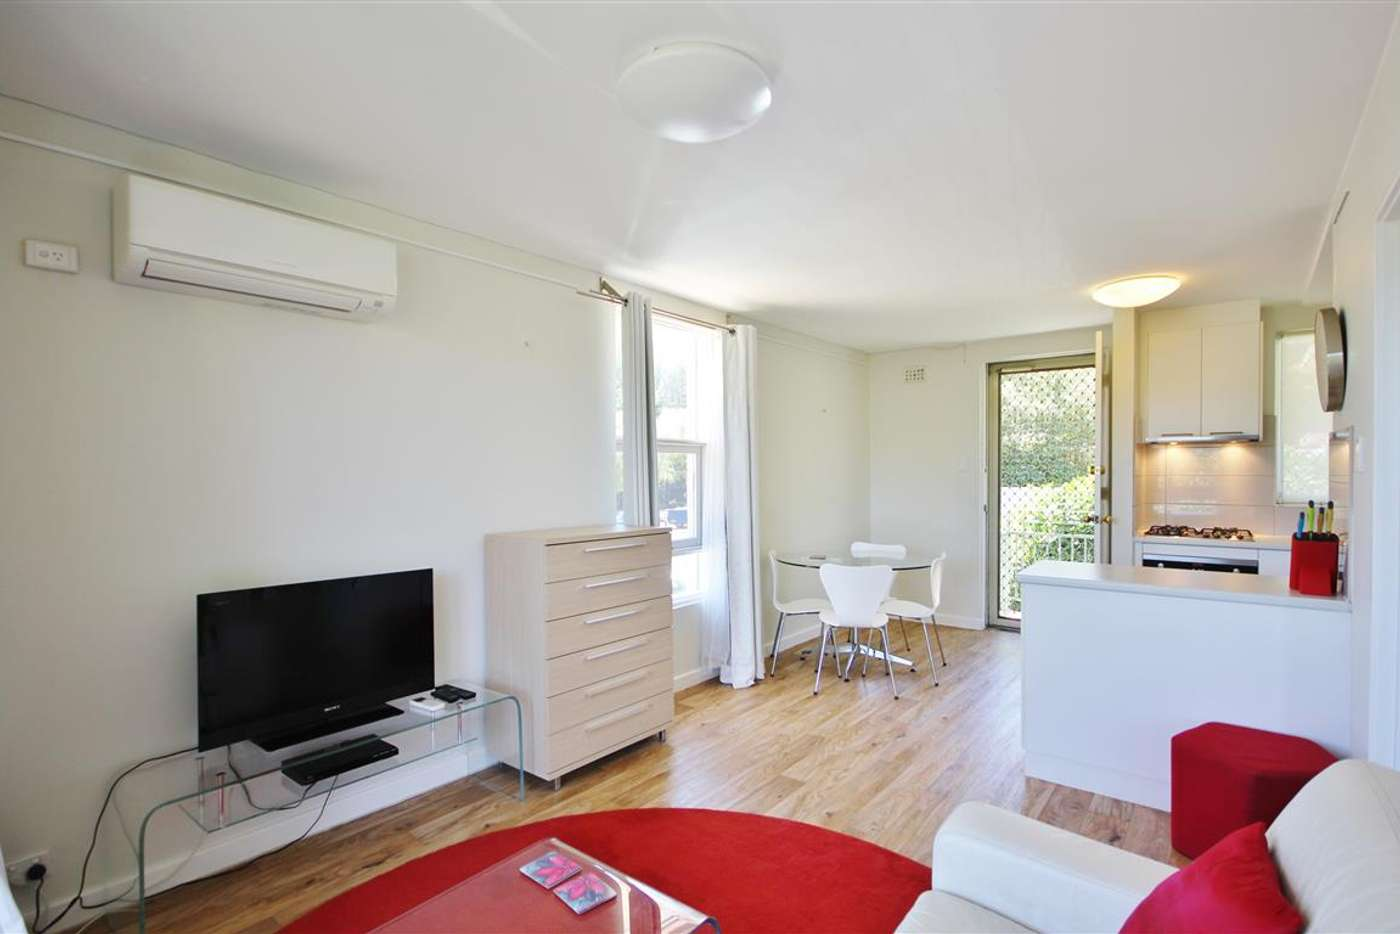 Main view of Homely unit listing, 3/24 ONSLOW STREET, South Perth WA 6151